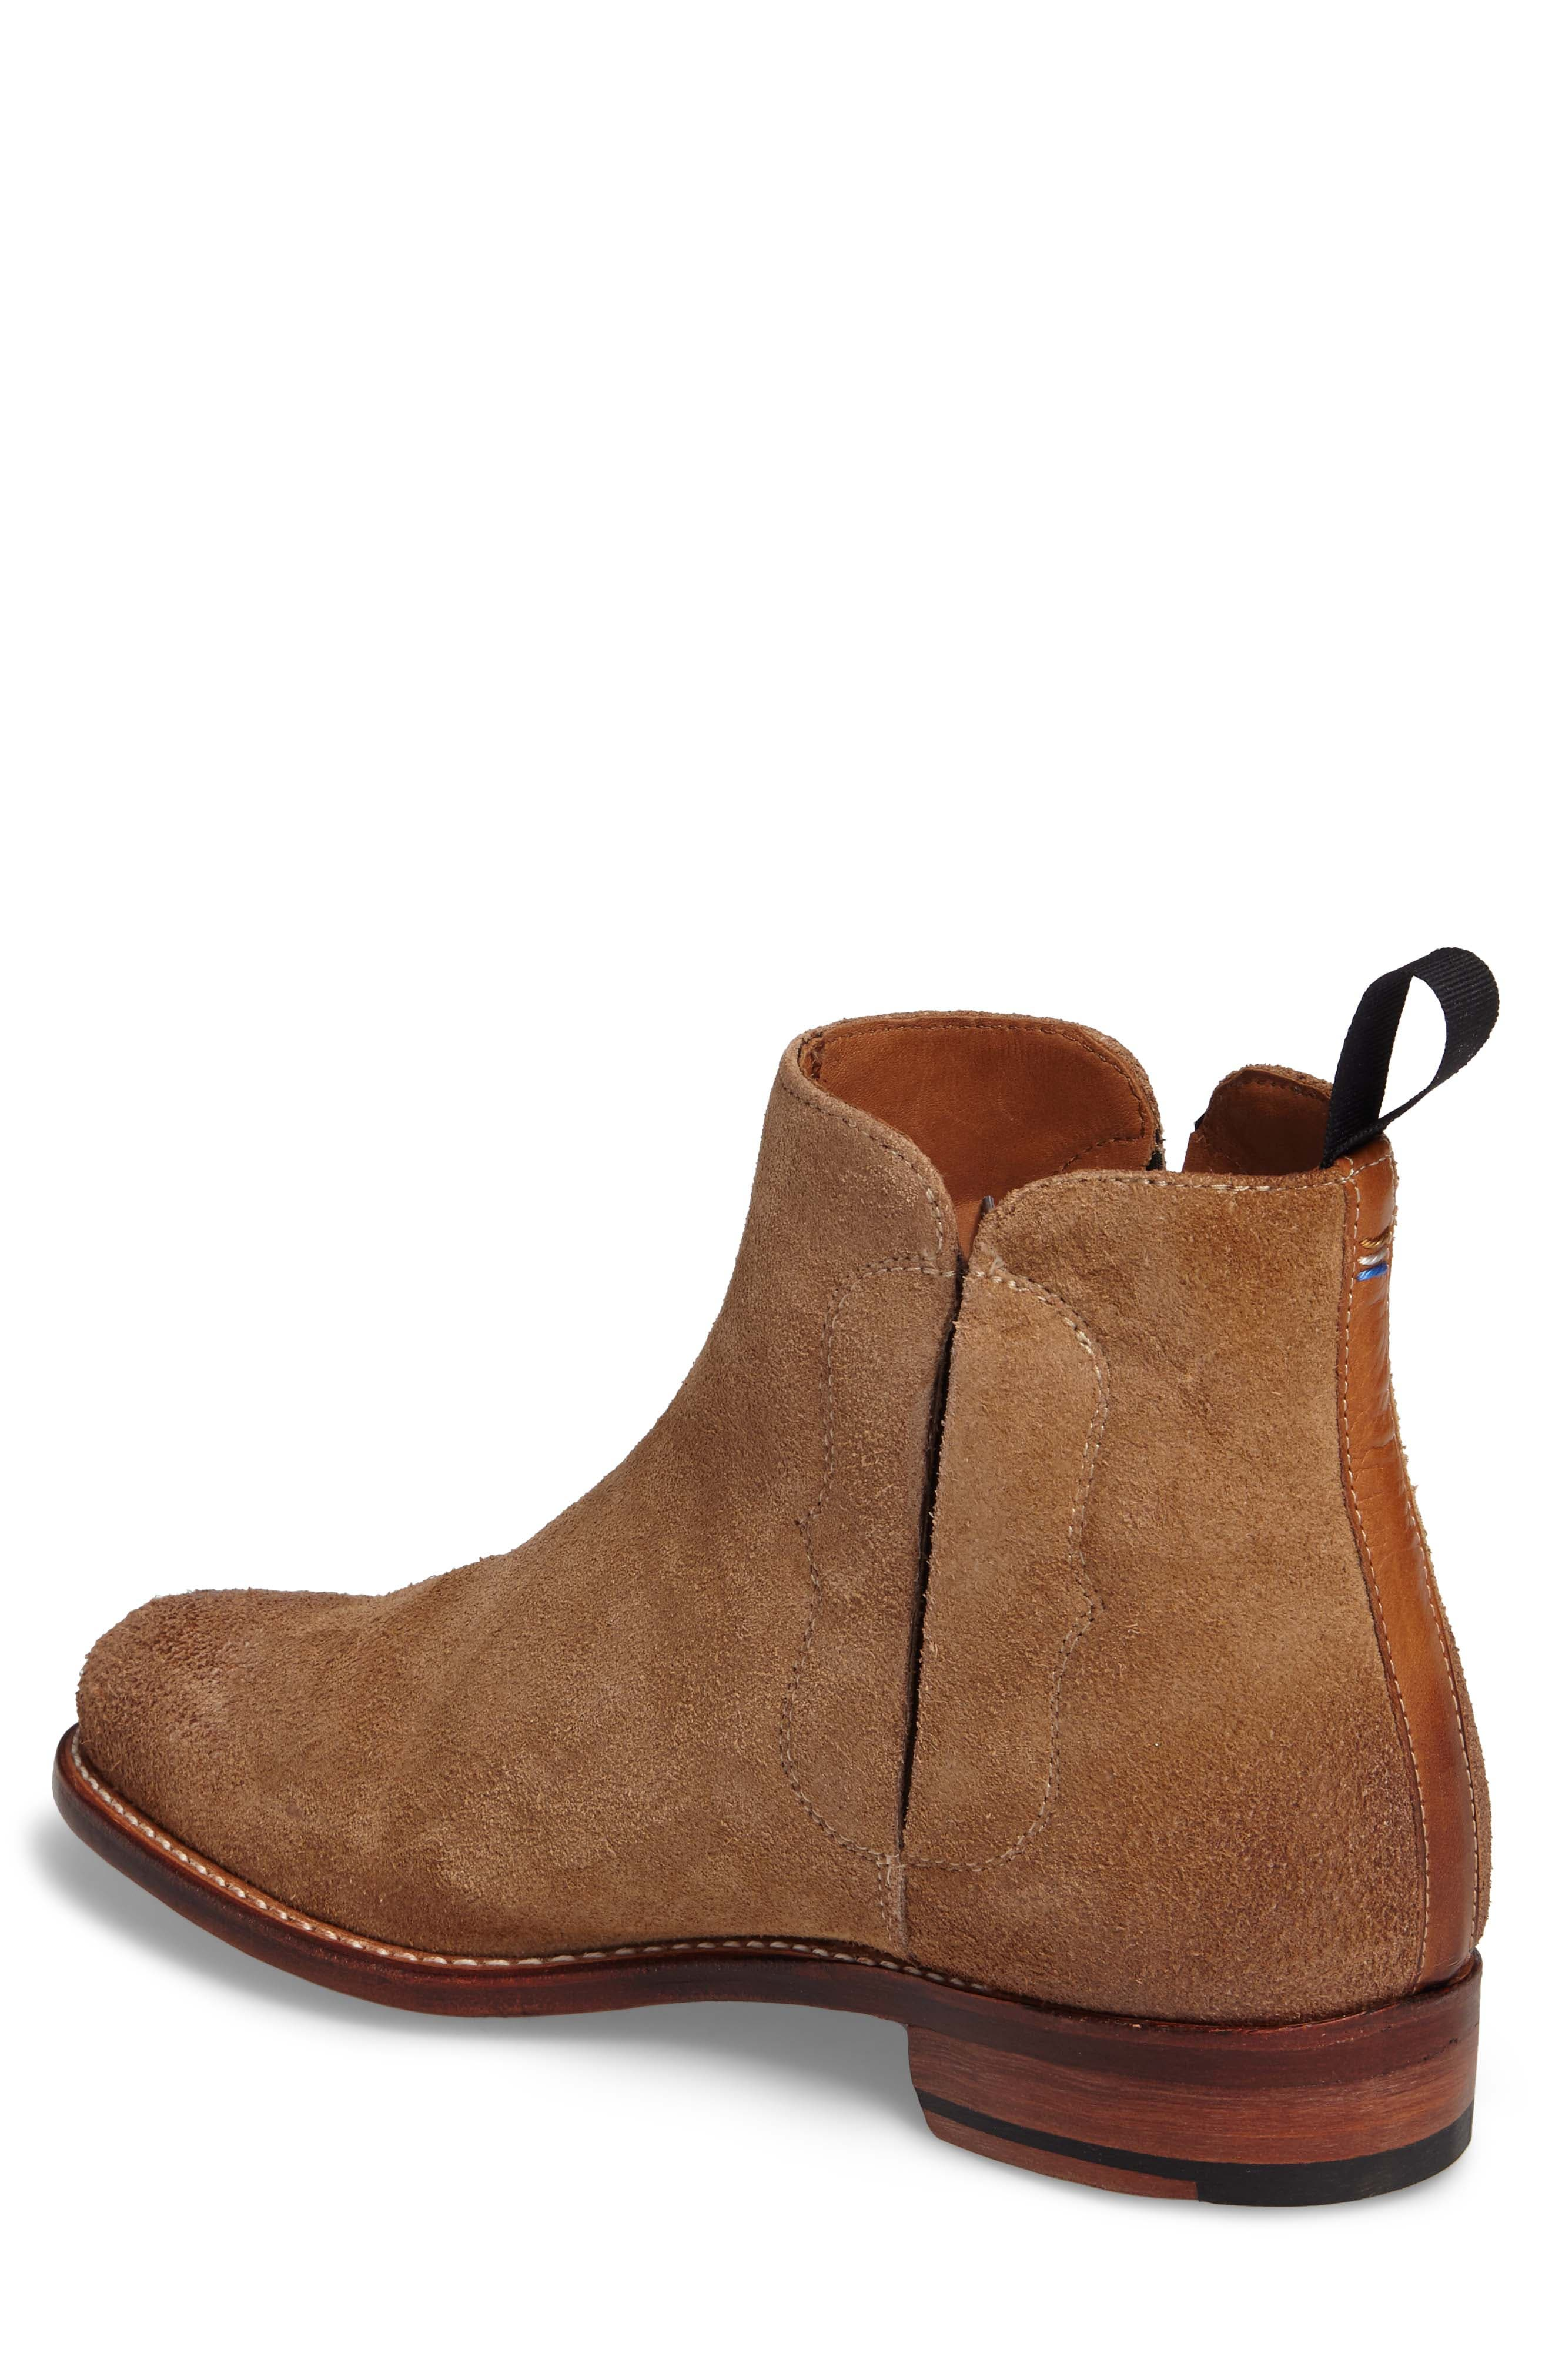 Ariat Maxwell Chelsea Boot,                             Alternate thumbnail 2, color,                             Amaretto Suede